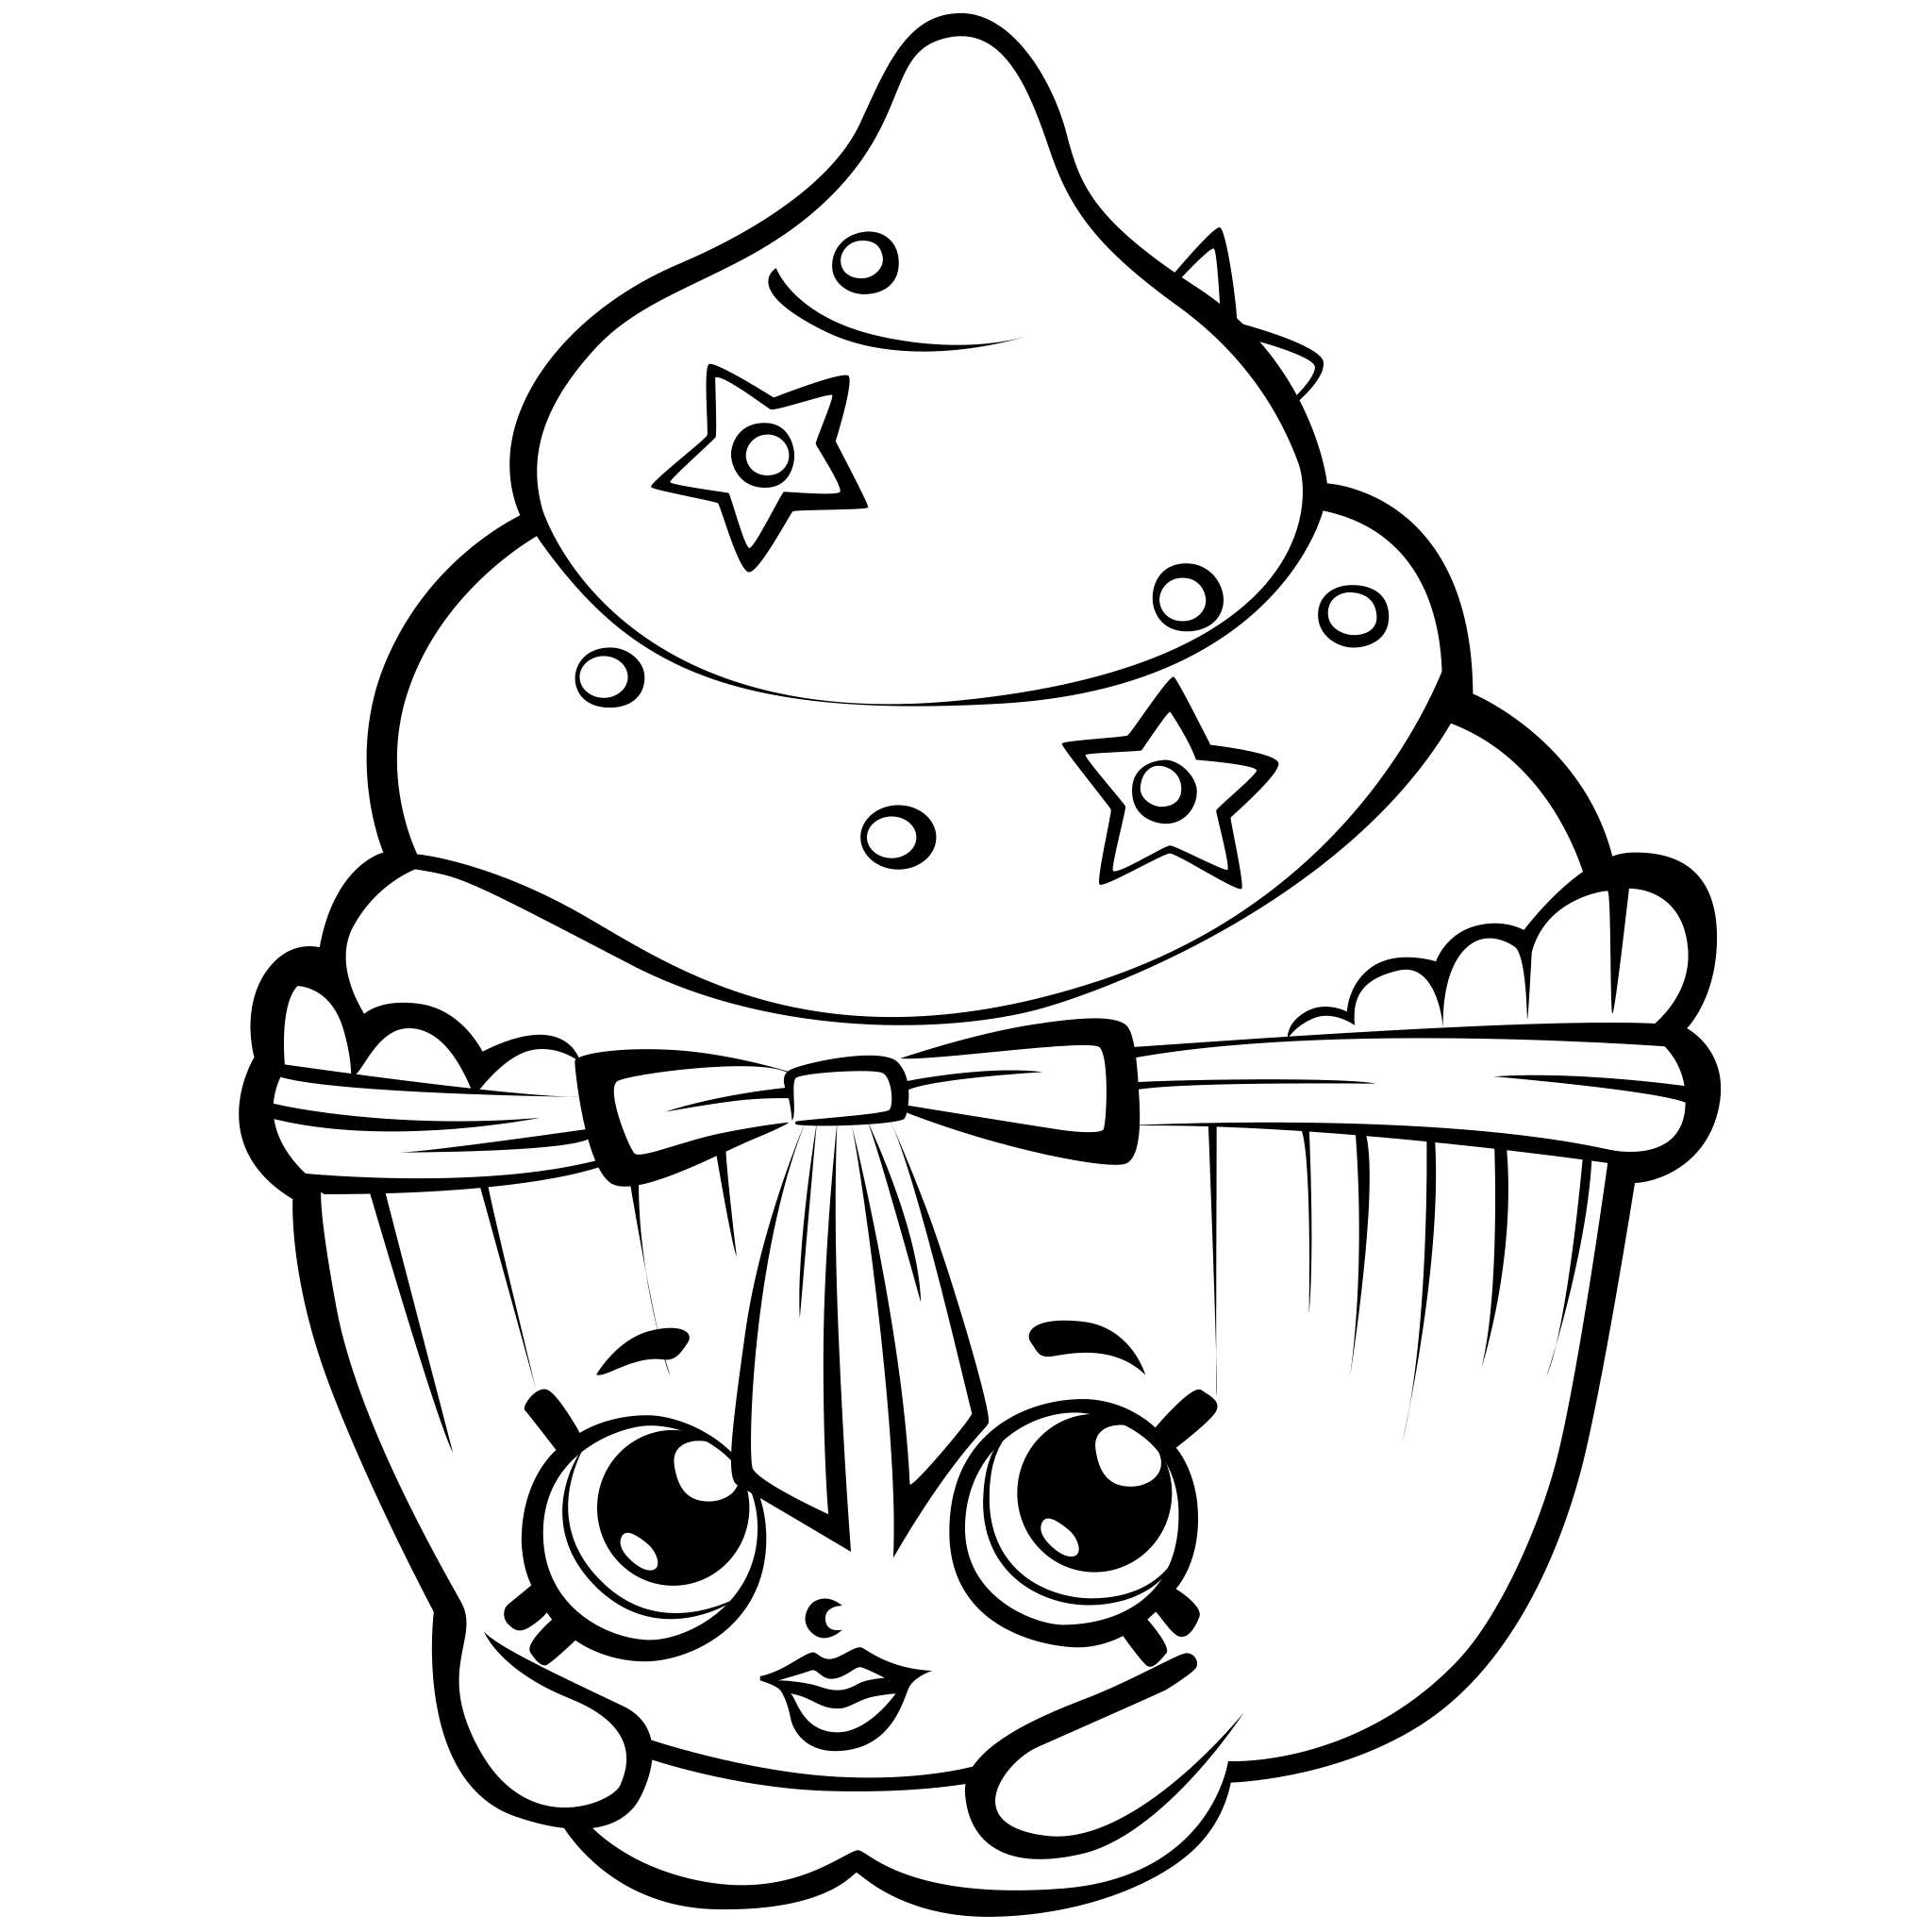 shopkins coloring pages printables - Cartoon Coloring Pages Printables